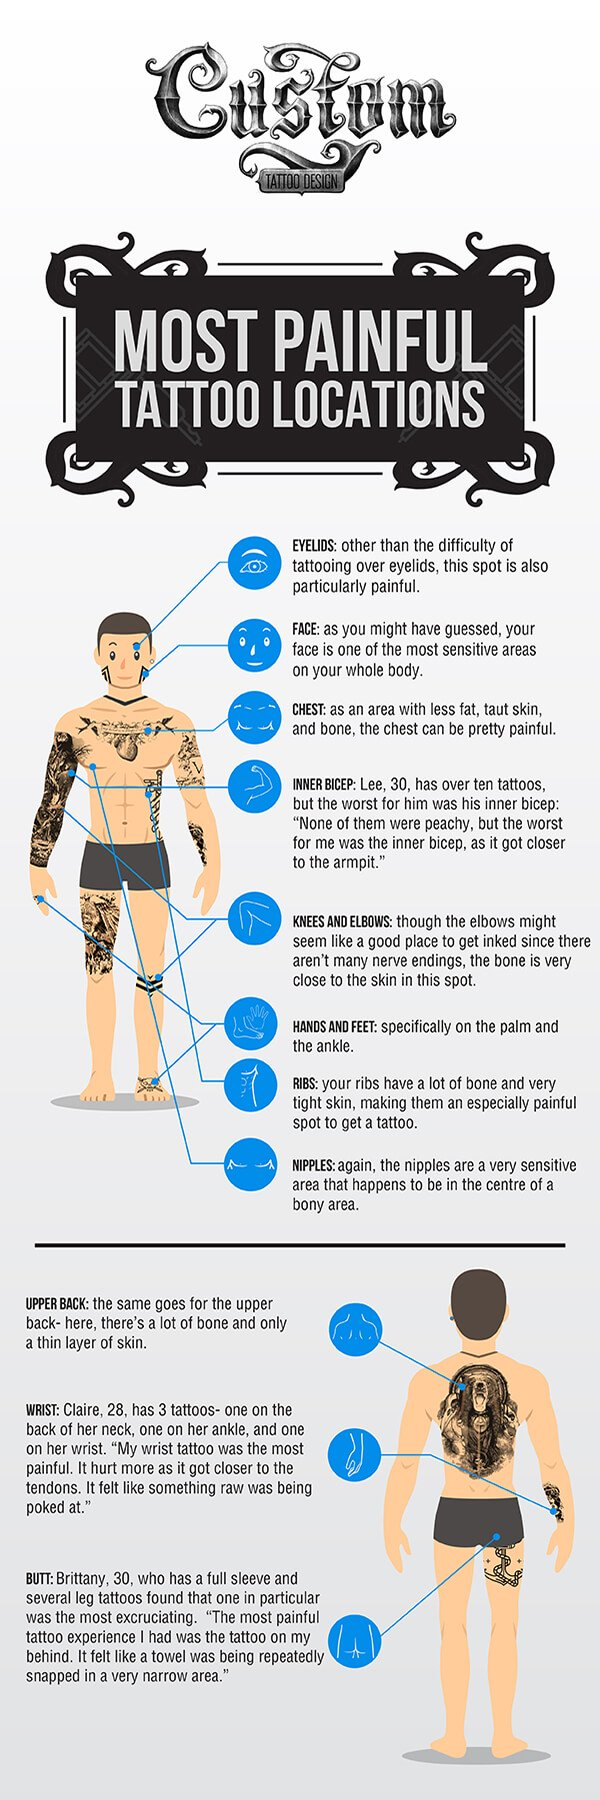 Chest Tattoos Pain : chest, tattoos, Painful, Places, Tattoos, CUSTOM, TATTOO, DESIGN